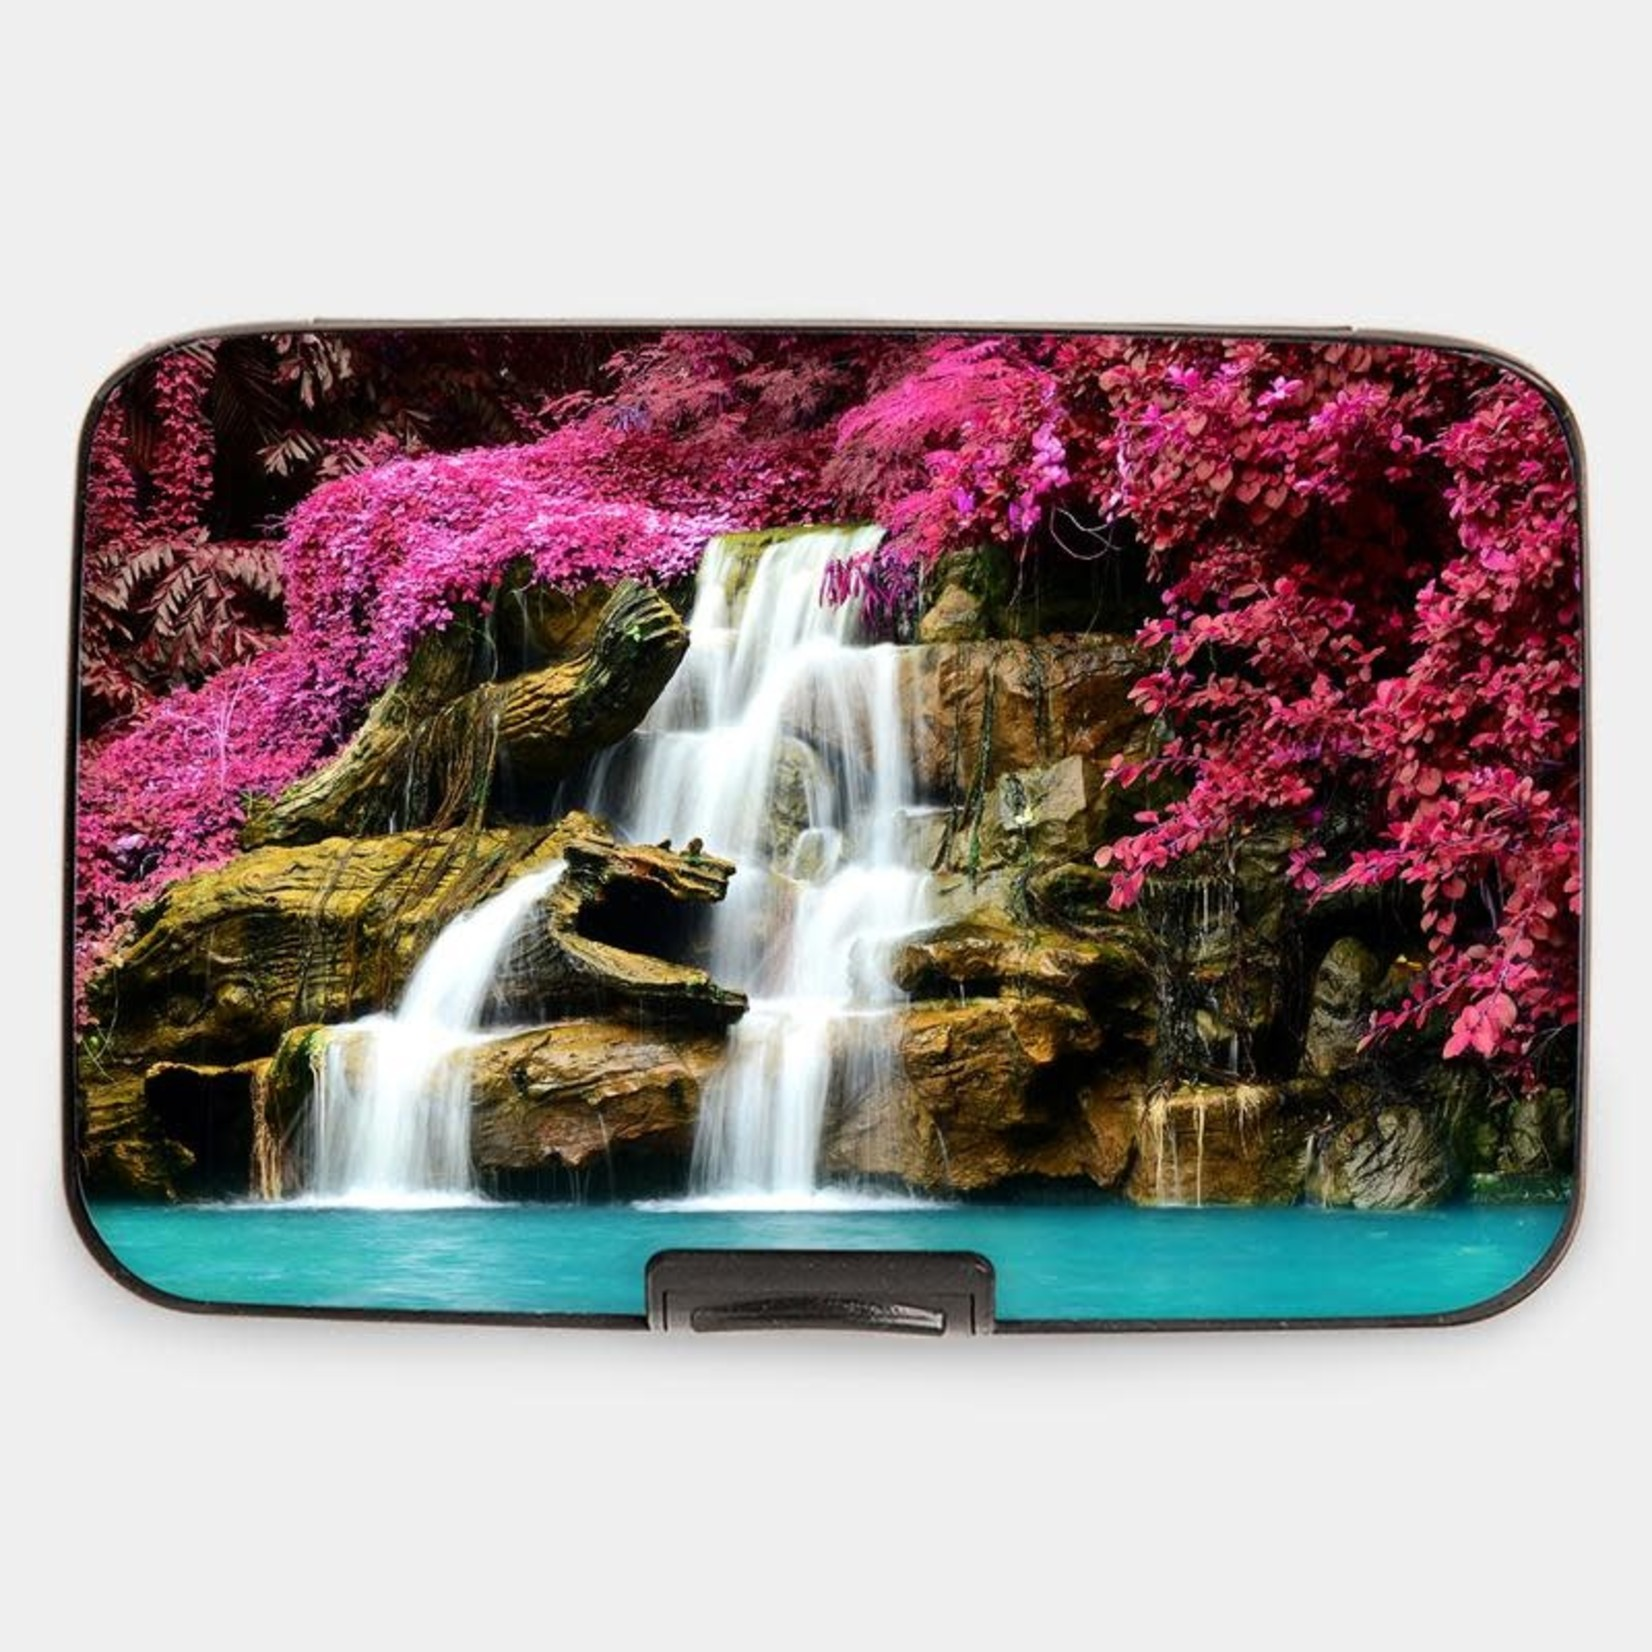 Monarque Armored Wallet - Waterfall